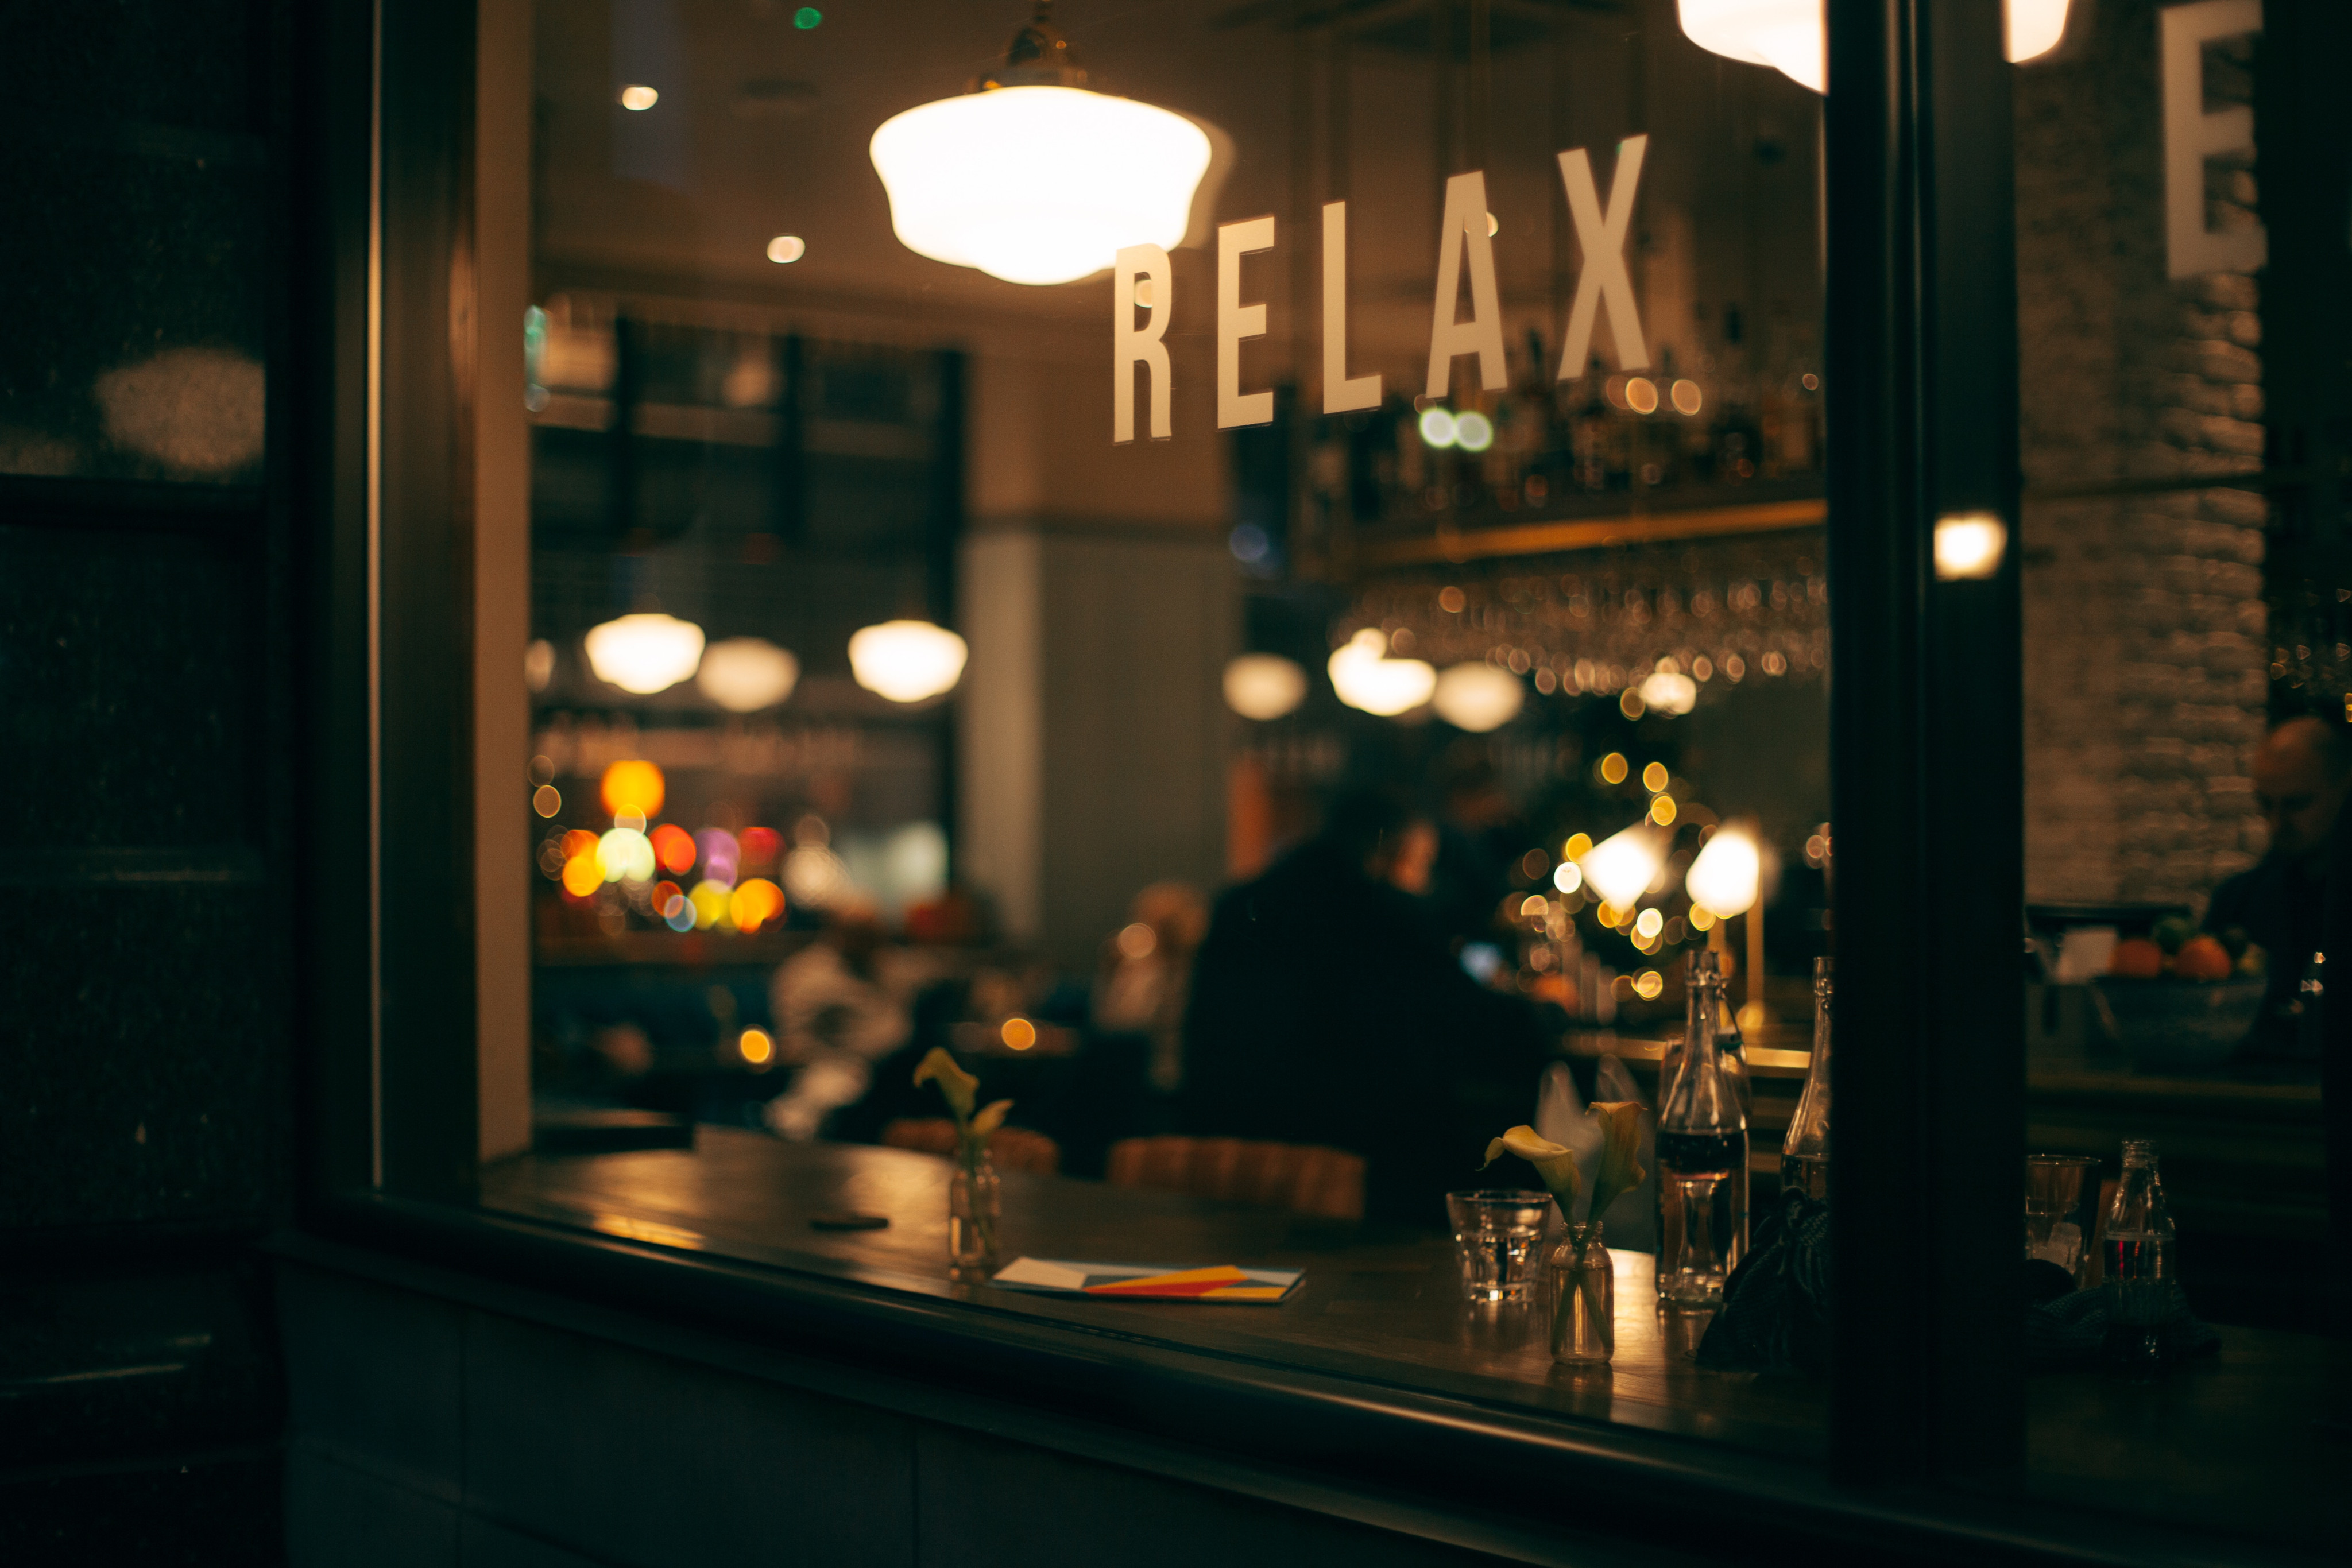 Looking into the window of a restaurant at nighttime with the word Relax painted on the window.